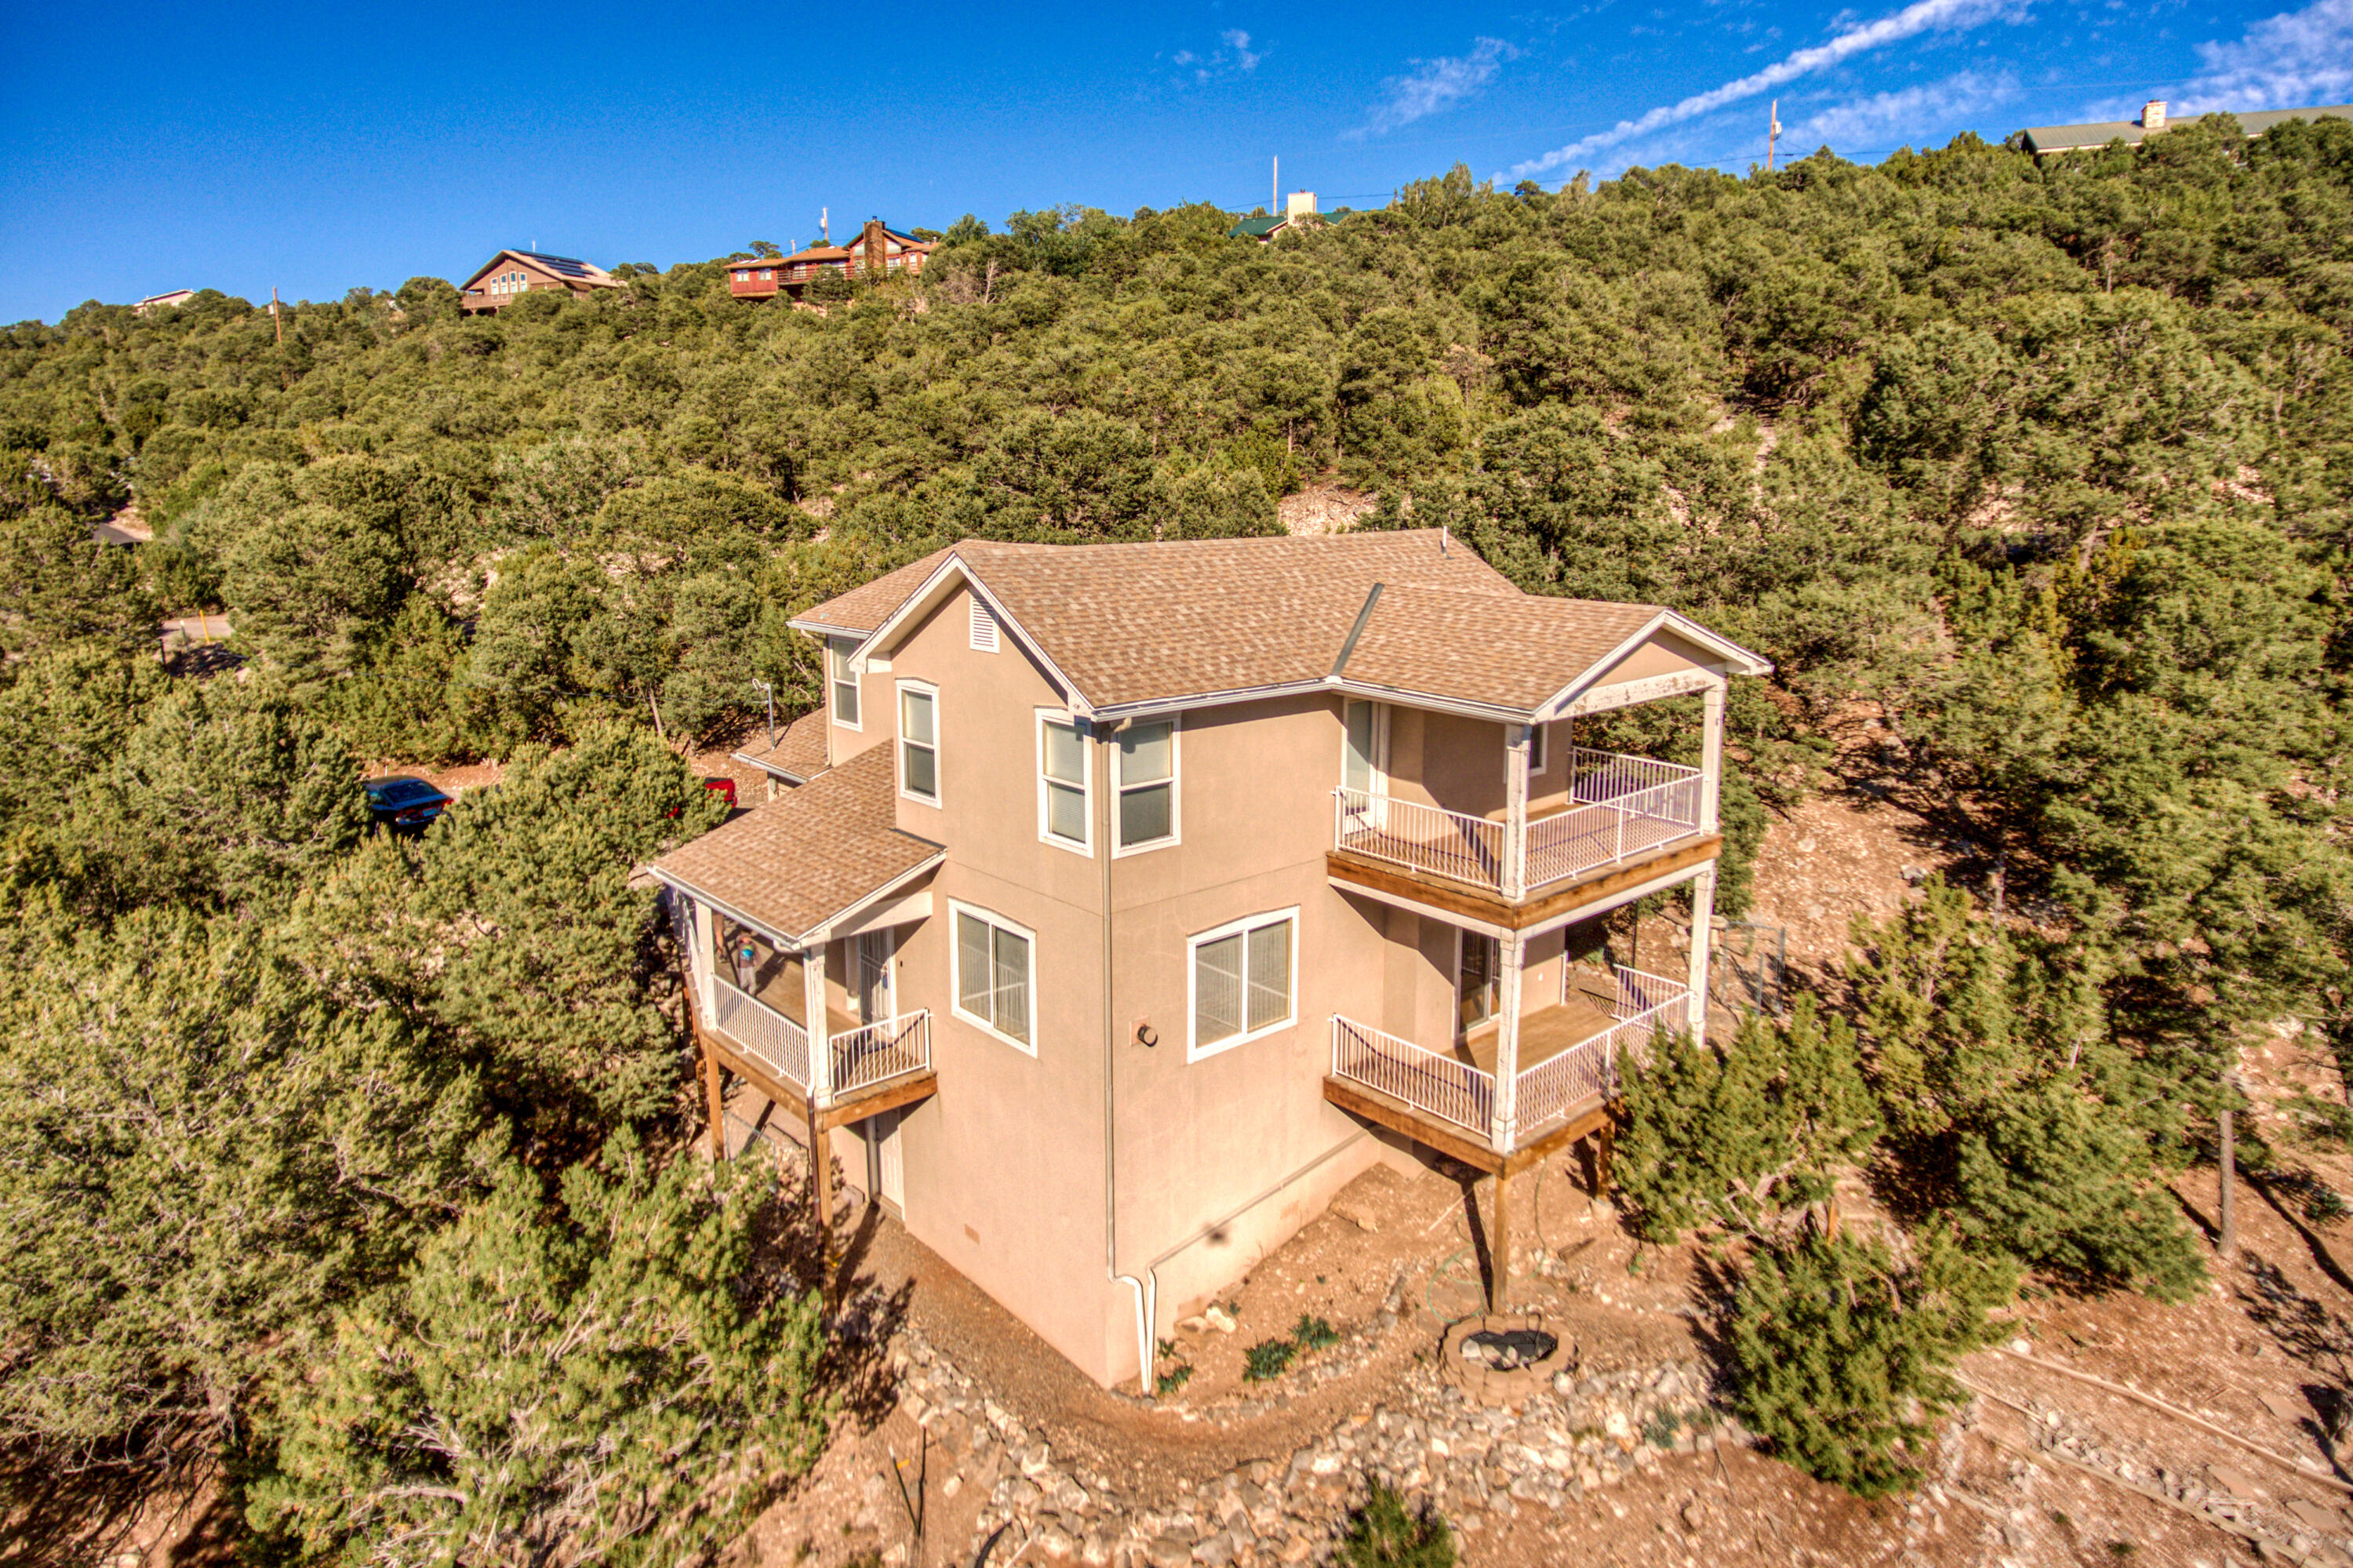 Welcome to Tablazan! This home has amazing views from the living room, dining room and master bedroom. Enjoy sitting on your own private deck to enjoy star gazing. The kitchen has plenty of cabinets for all your goodies and bar for extra seating. The half bath downstairs makes it convenient for your guests. The bedrooms are all upstairs with a full bath in the hall. The Master Bedroom is complete with a walk in closet and a huge tub and seperate shower in the master bath. Make this home yours before its too late!